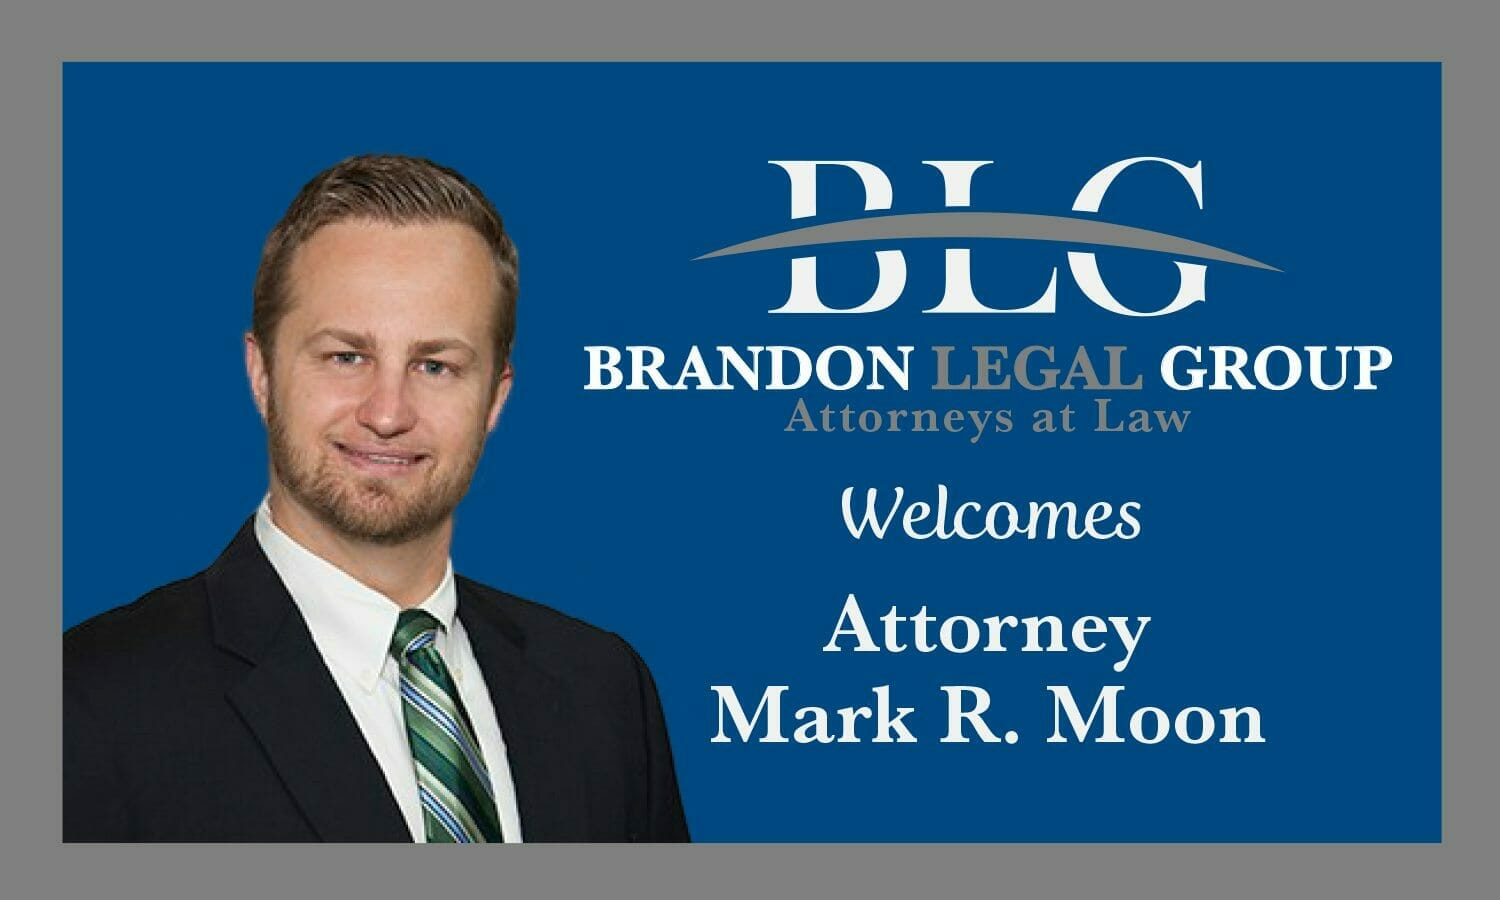 BLG Welcomes New Attorney Mark R. Moon